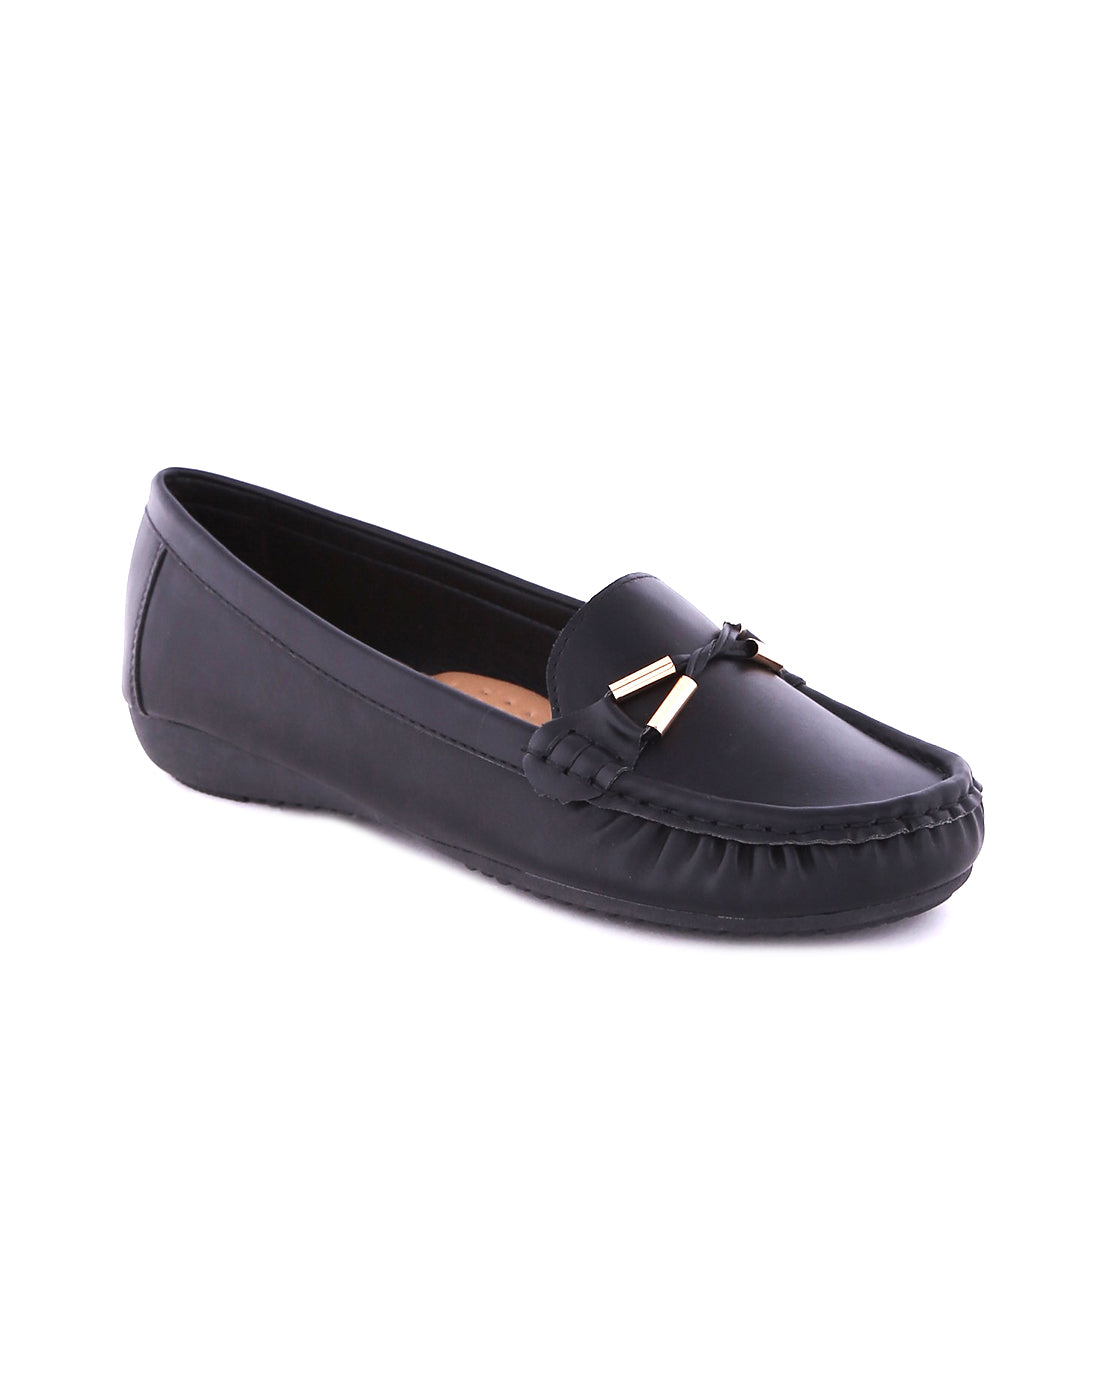 Lethaa Black Twisted Loafers